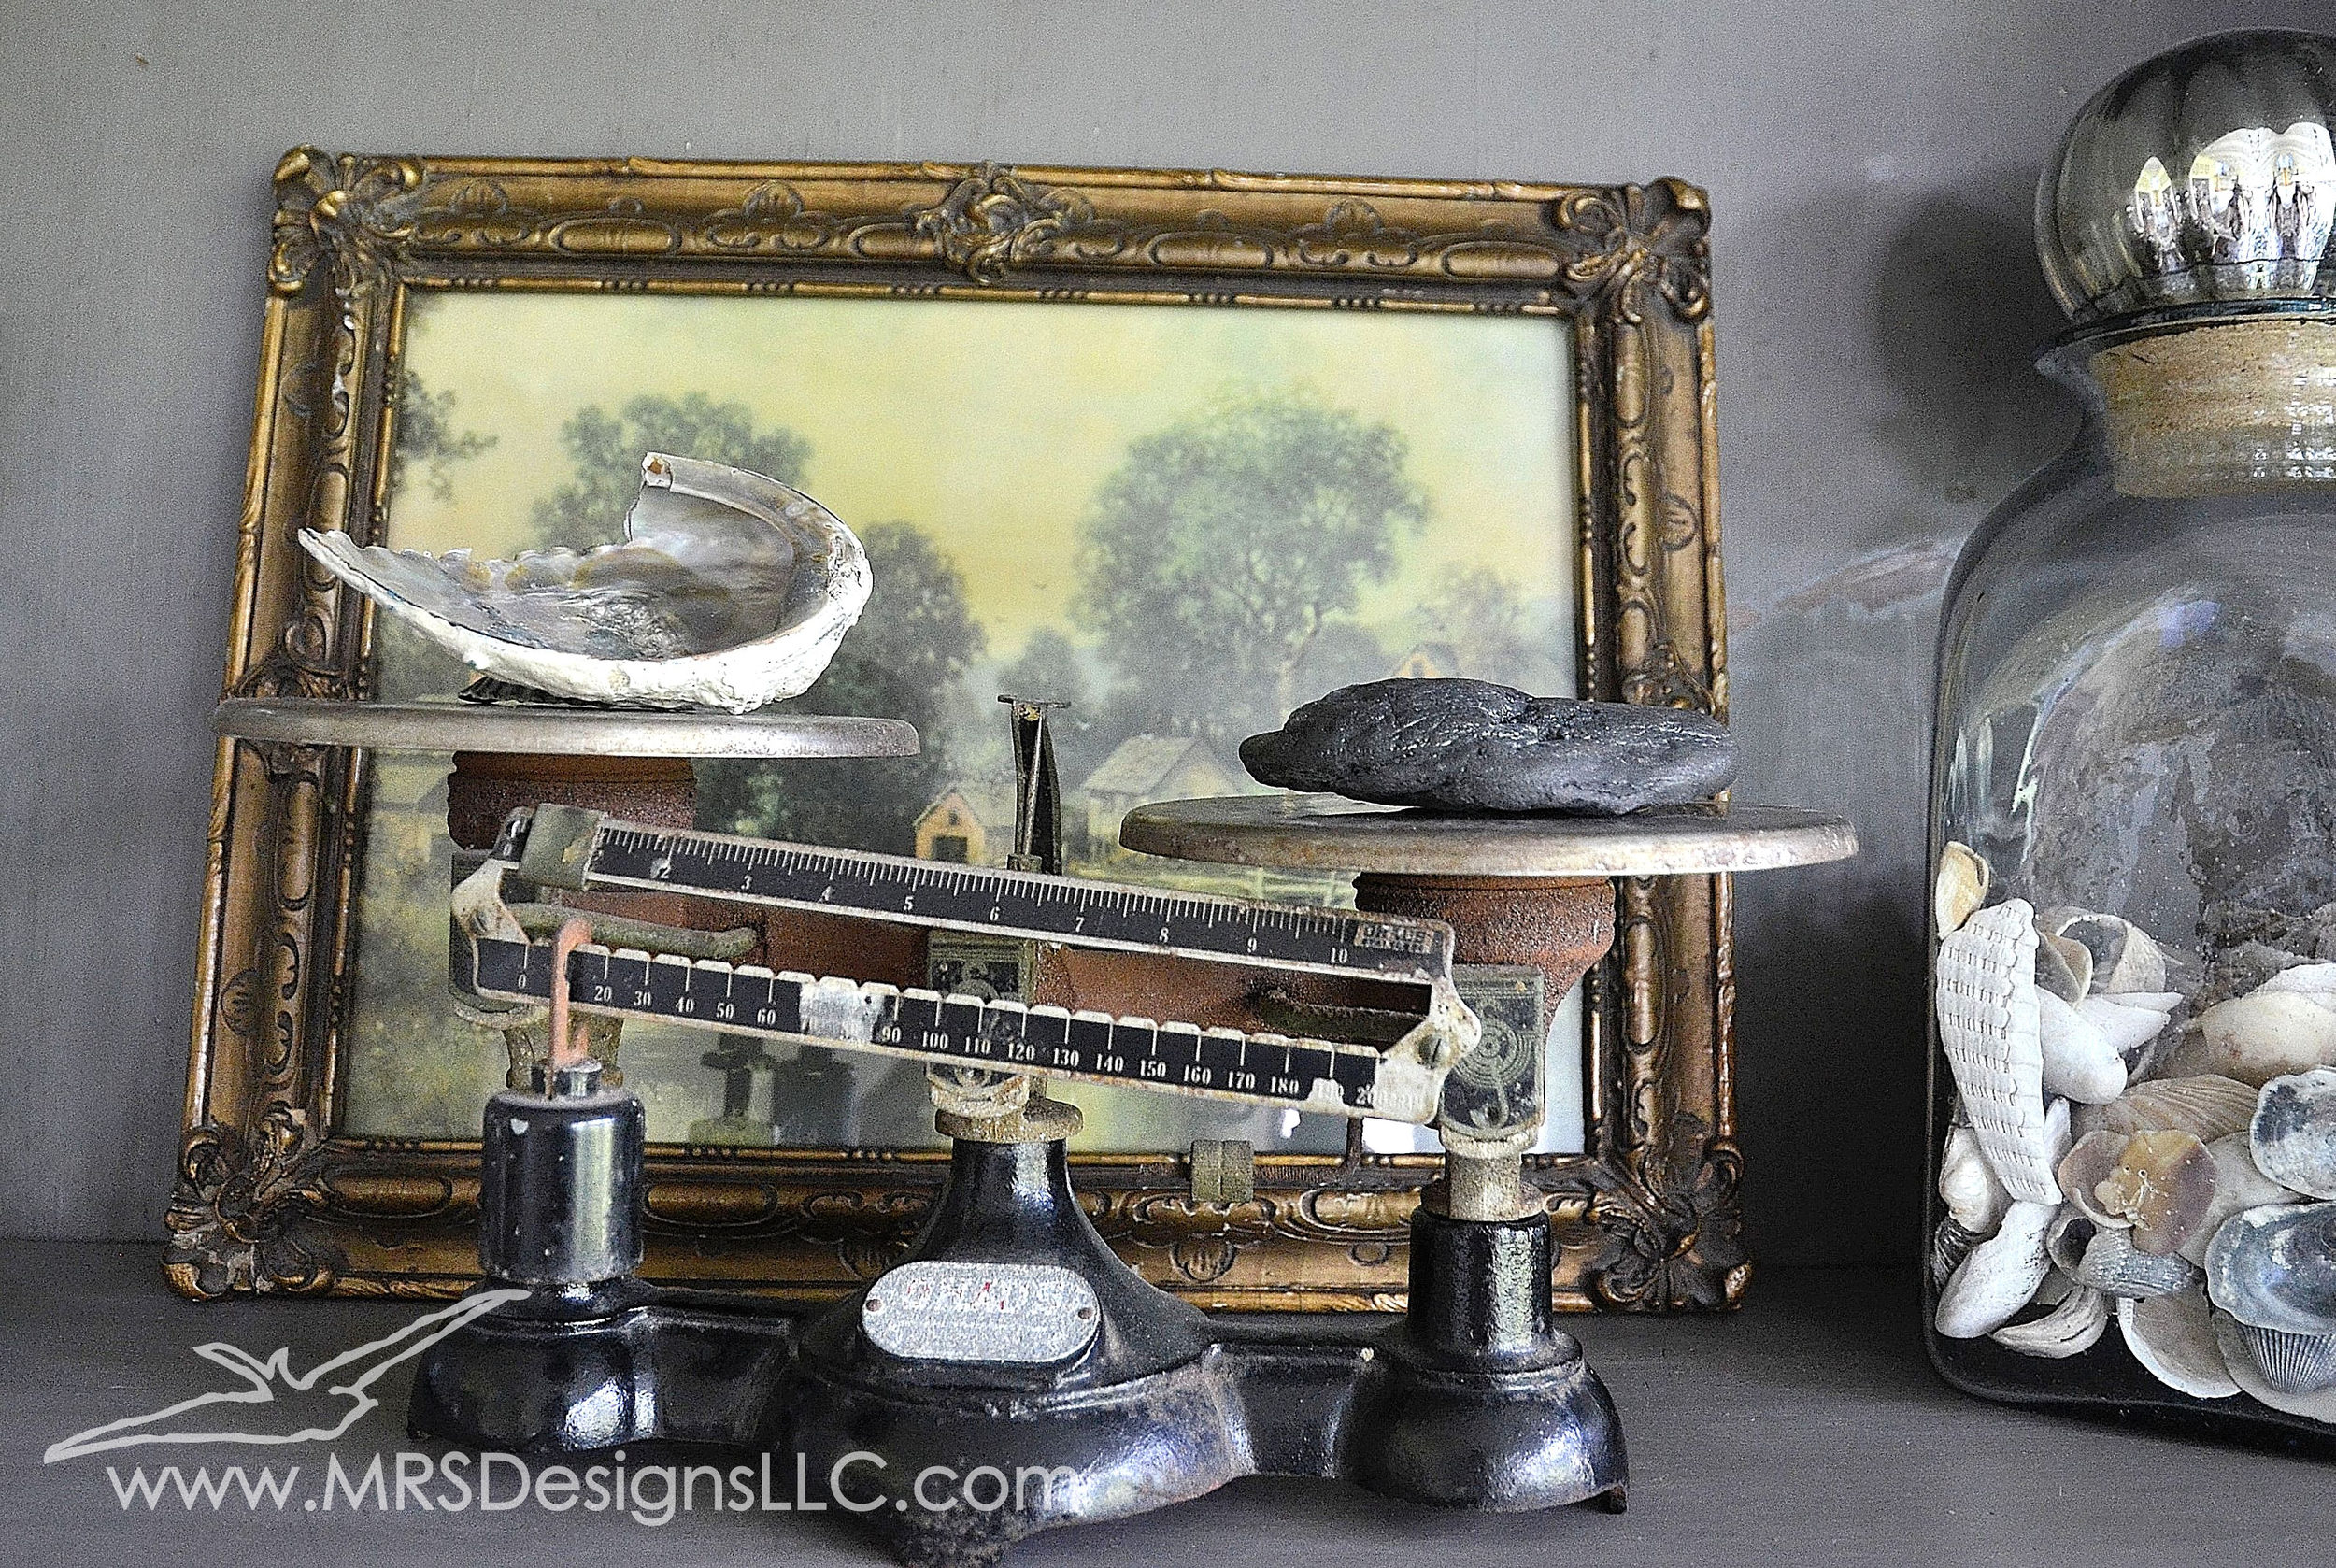 MRS Designs Blog - Using Vintage Scales to Decorate Your Home. Play around with props of different weights